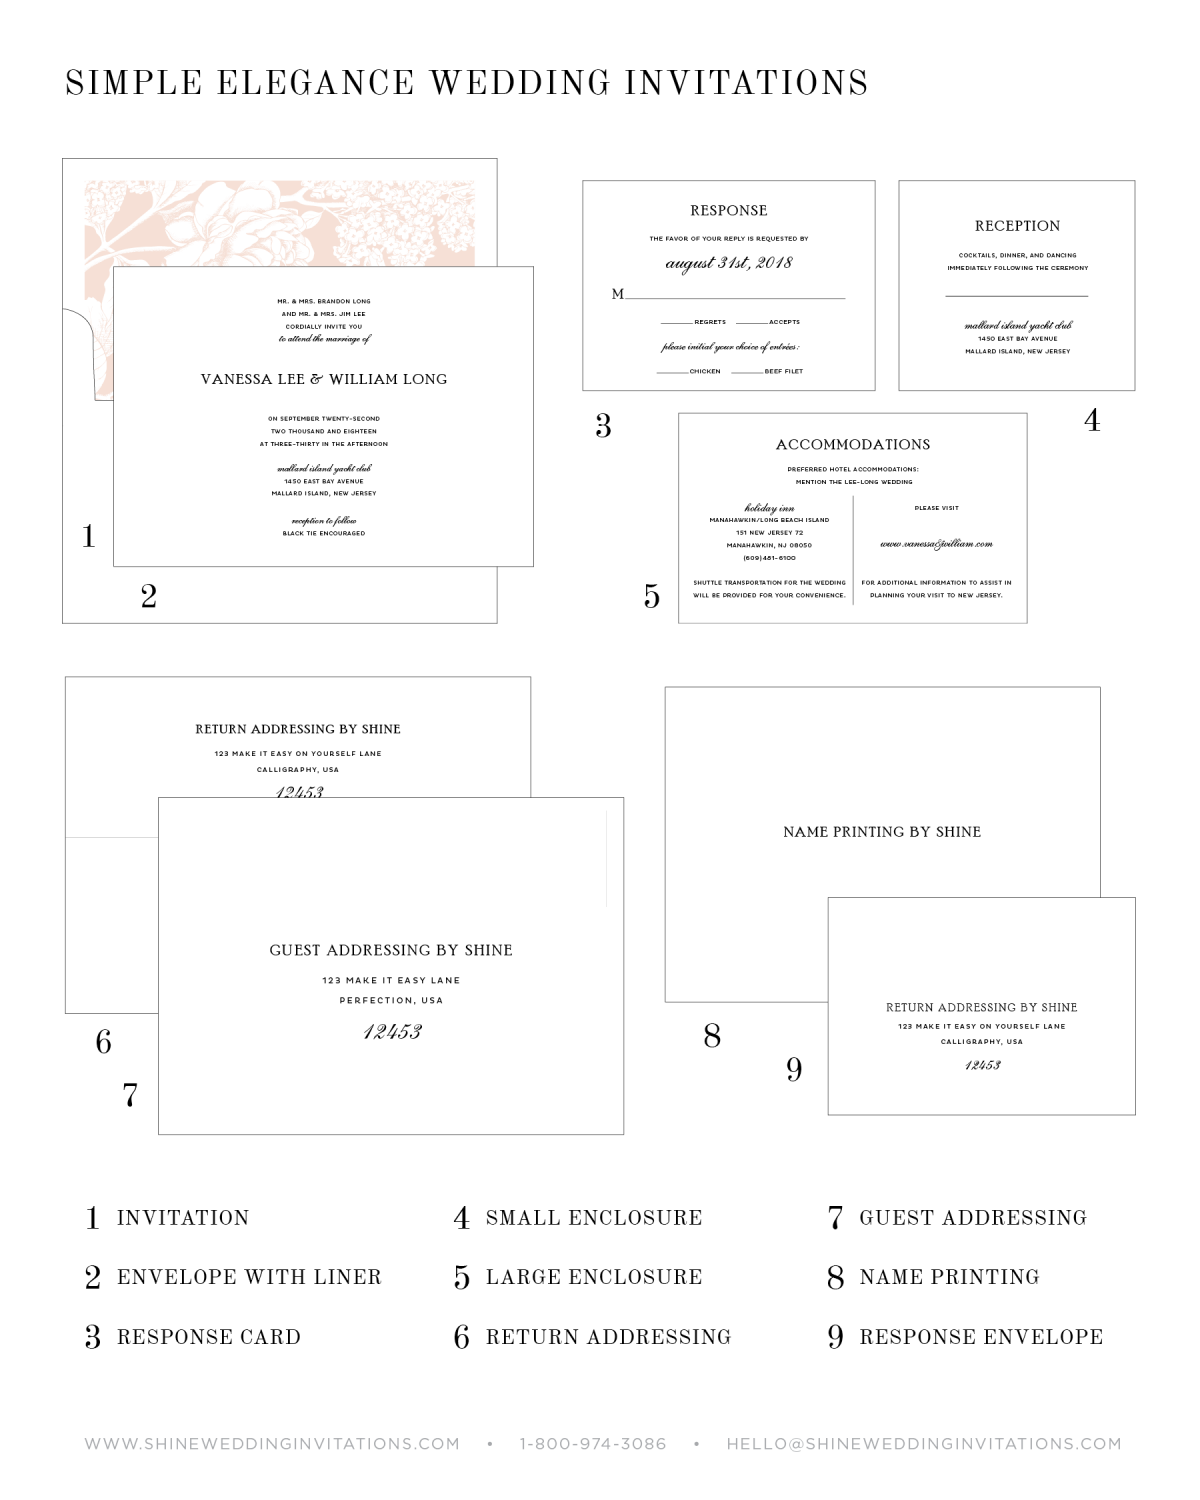 Wedding Invitations Diagram